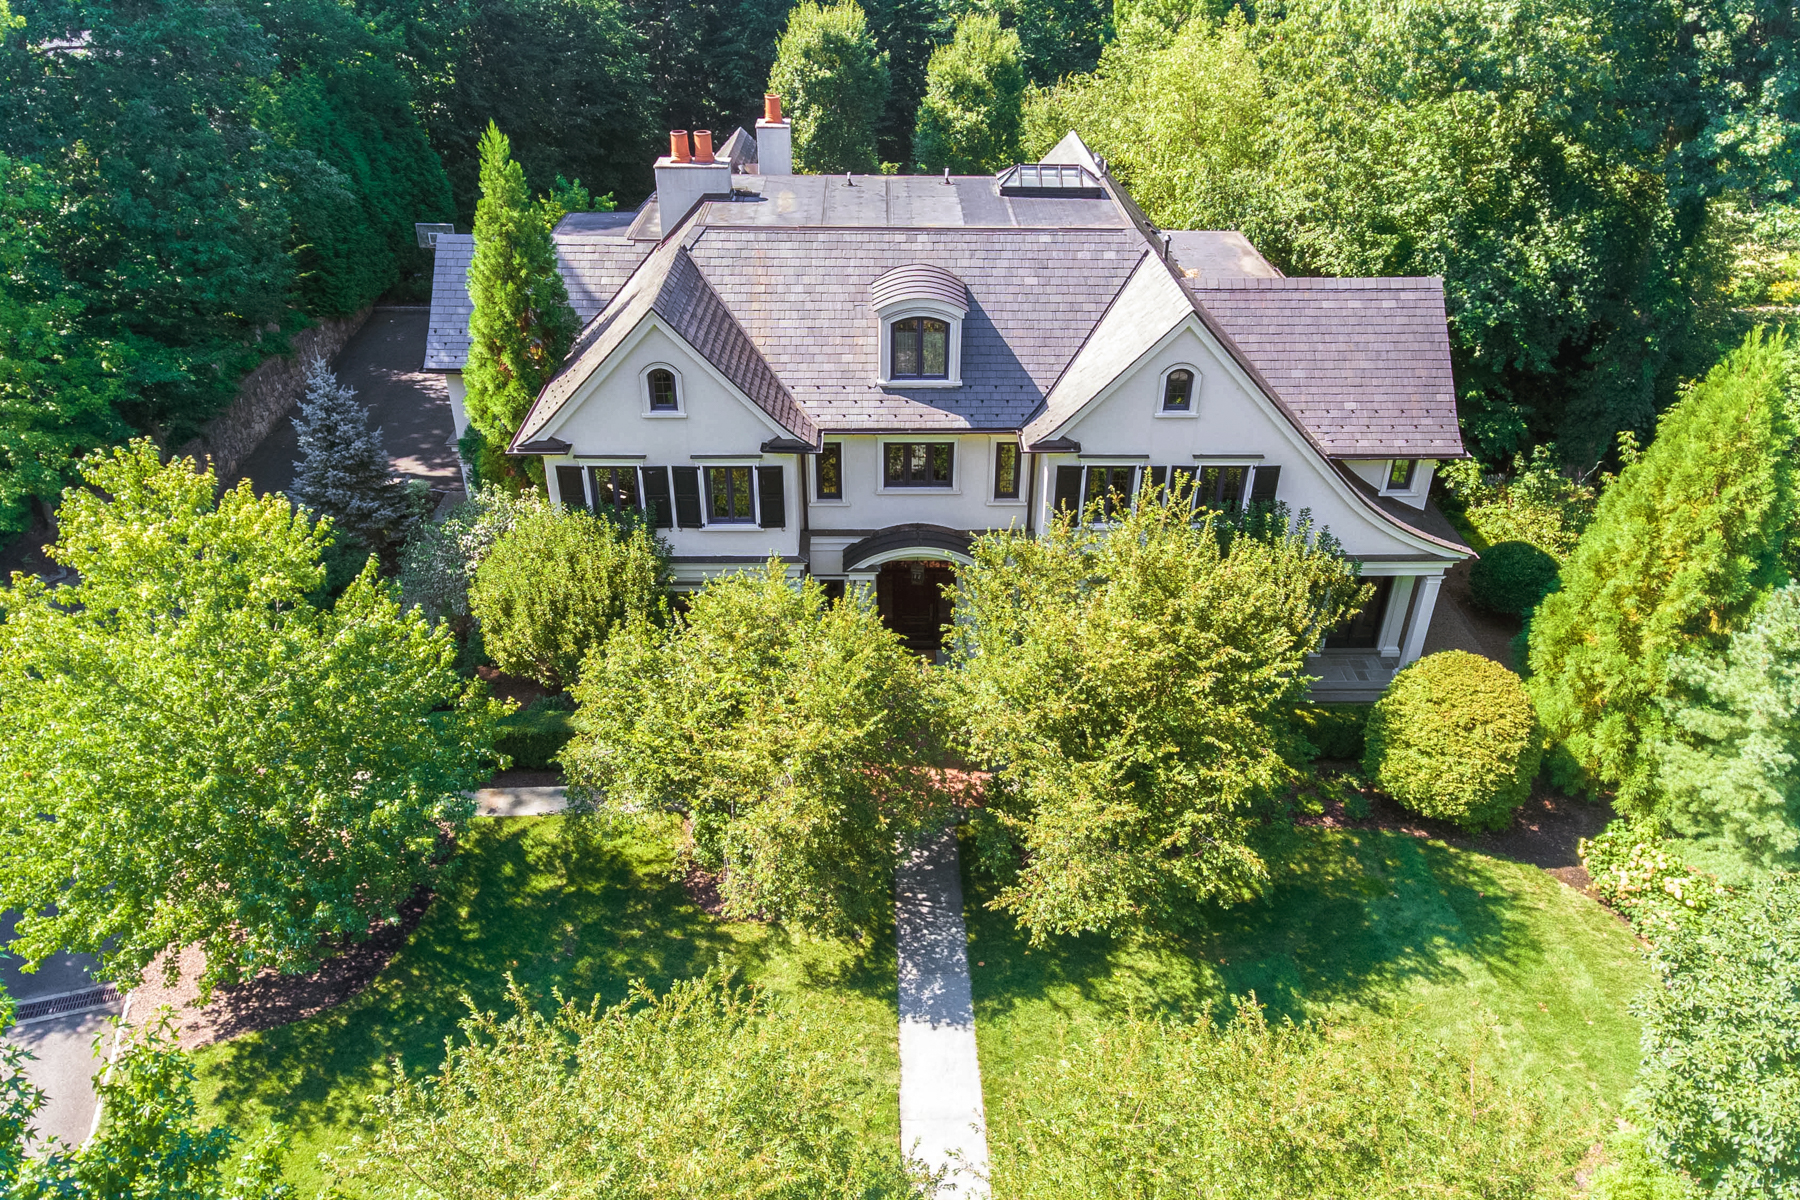 Single Family Homes for Sale at Timelessness And Old World Charm 46 Ox Bow Lane, Summit, New Jersey 07901 United States